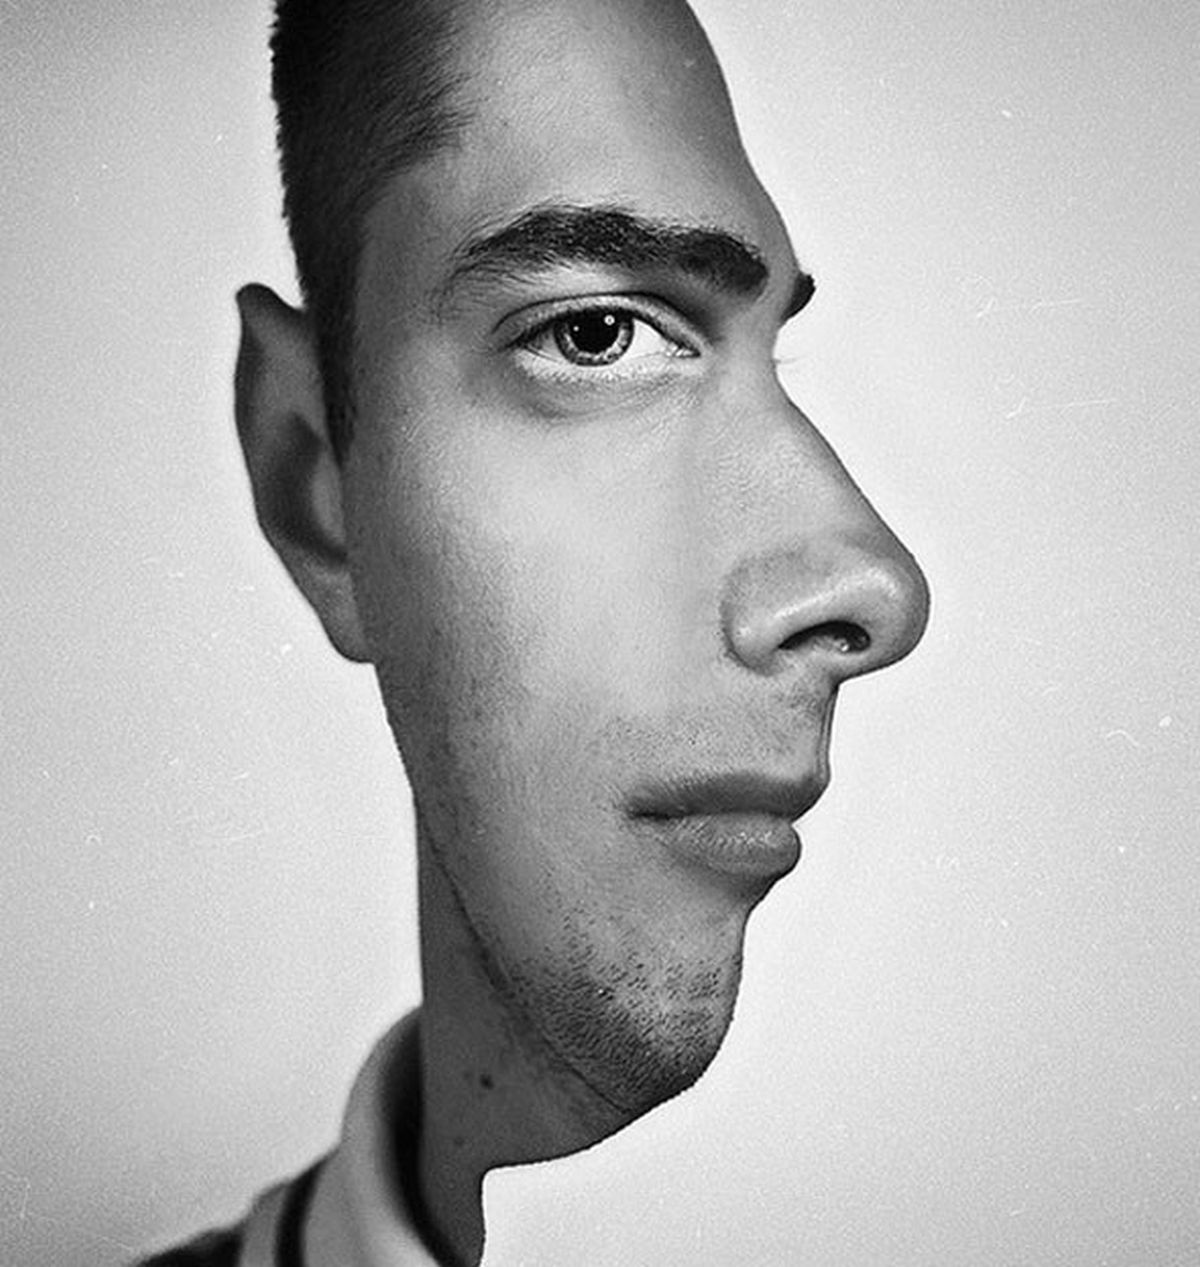 illusions optical visual feel incredible illusion mind weird faces blowing eye funny crazy drugs perception trippy face freaky cool creepy